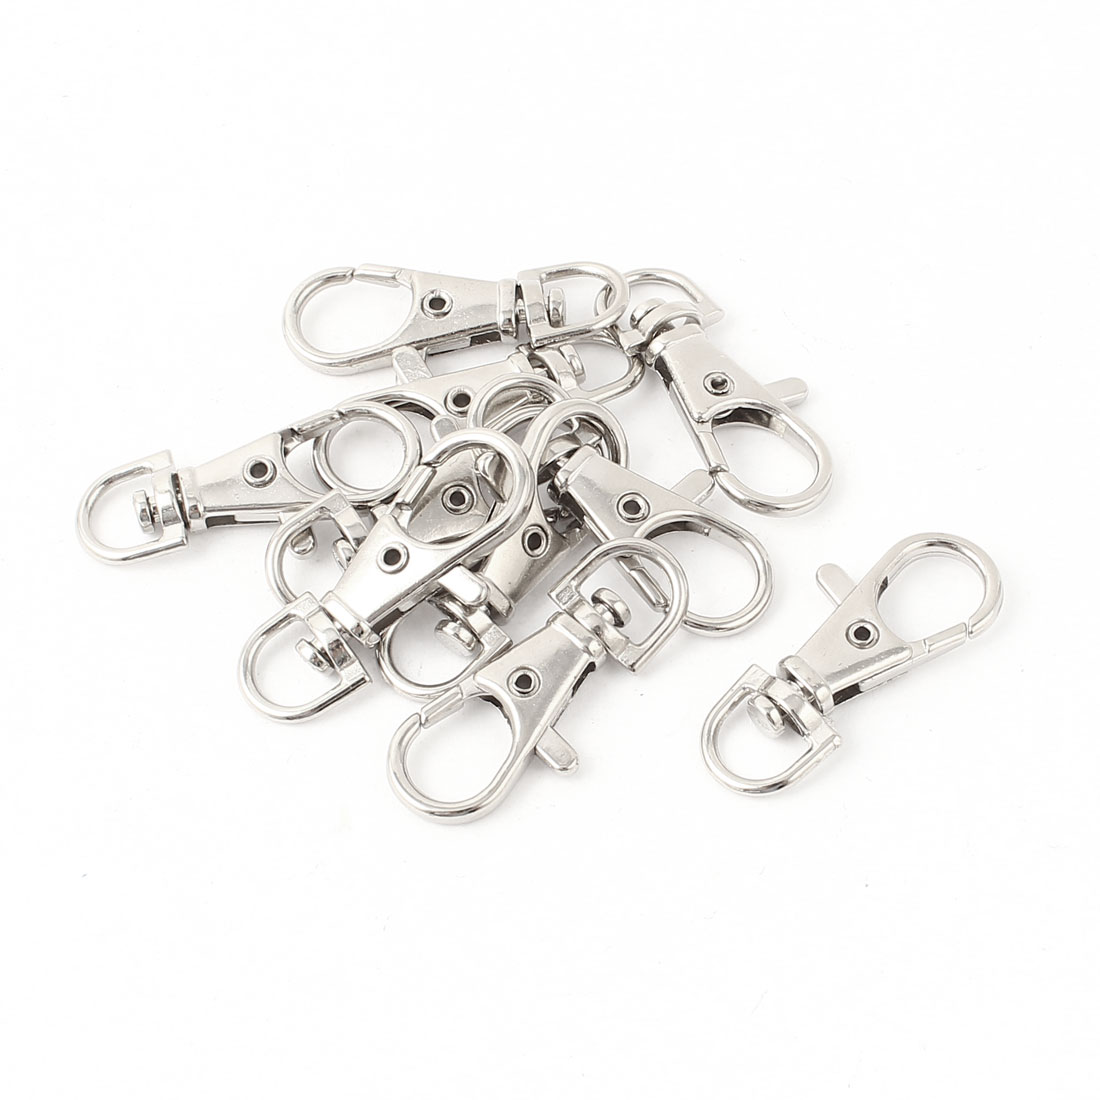 10Pcs Silver Tone Lobster Clasp Keychain Key Holder Hook Buckle Ring